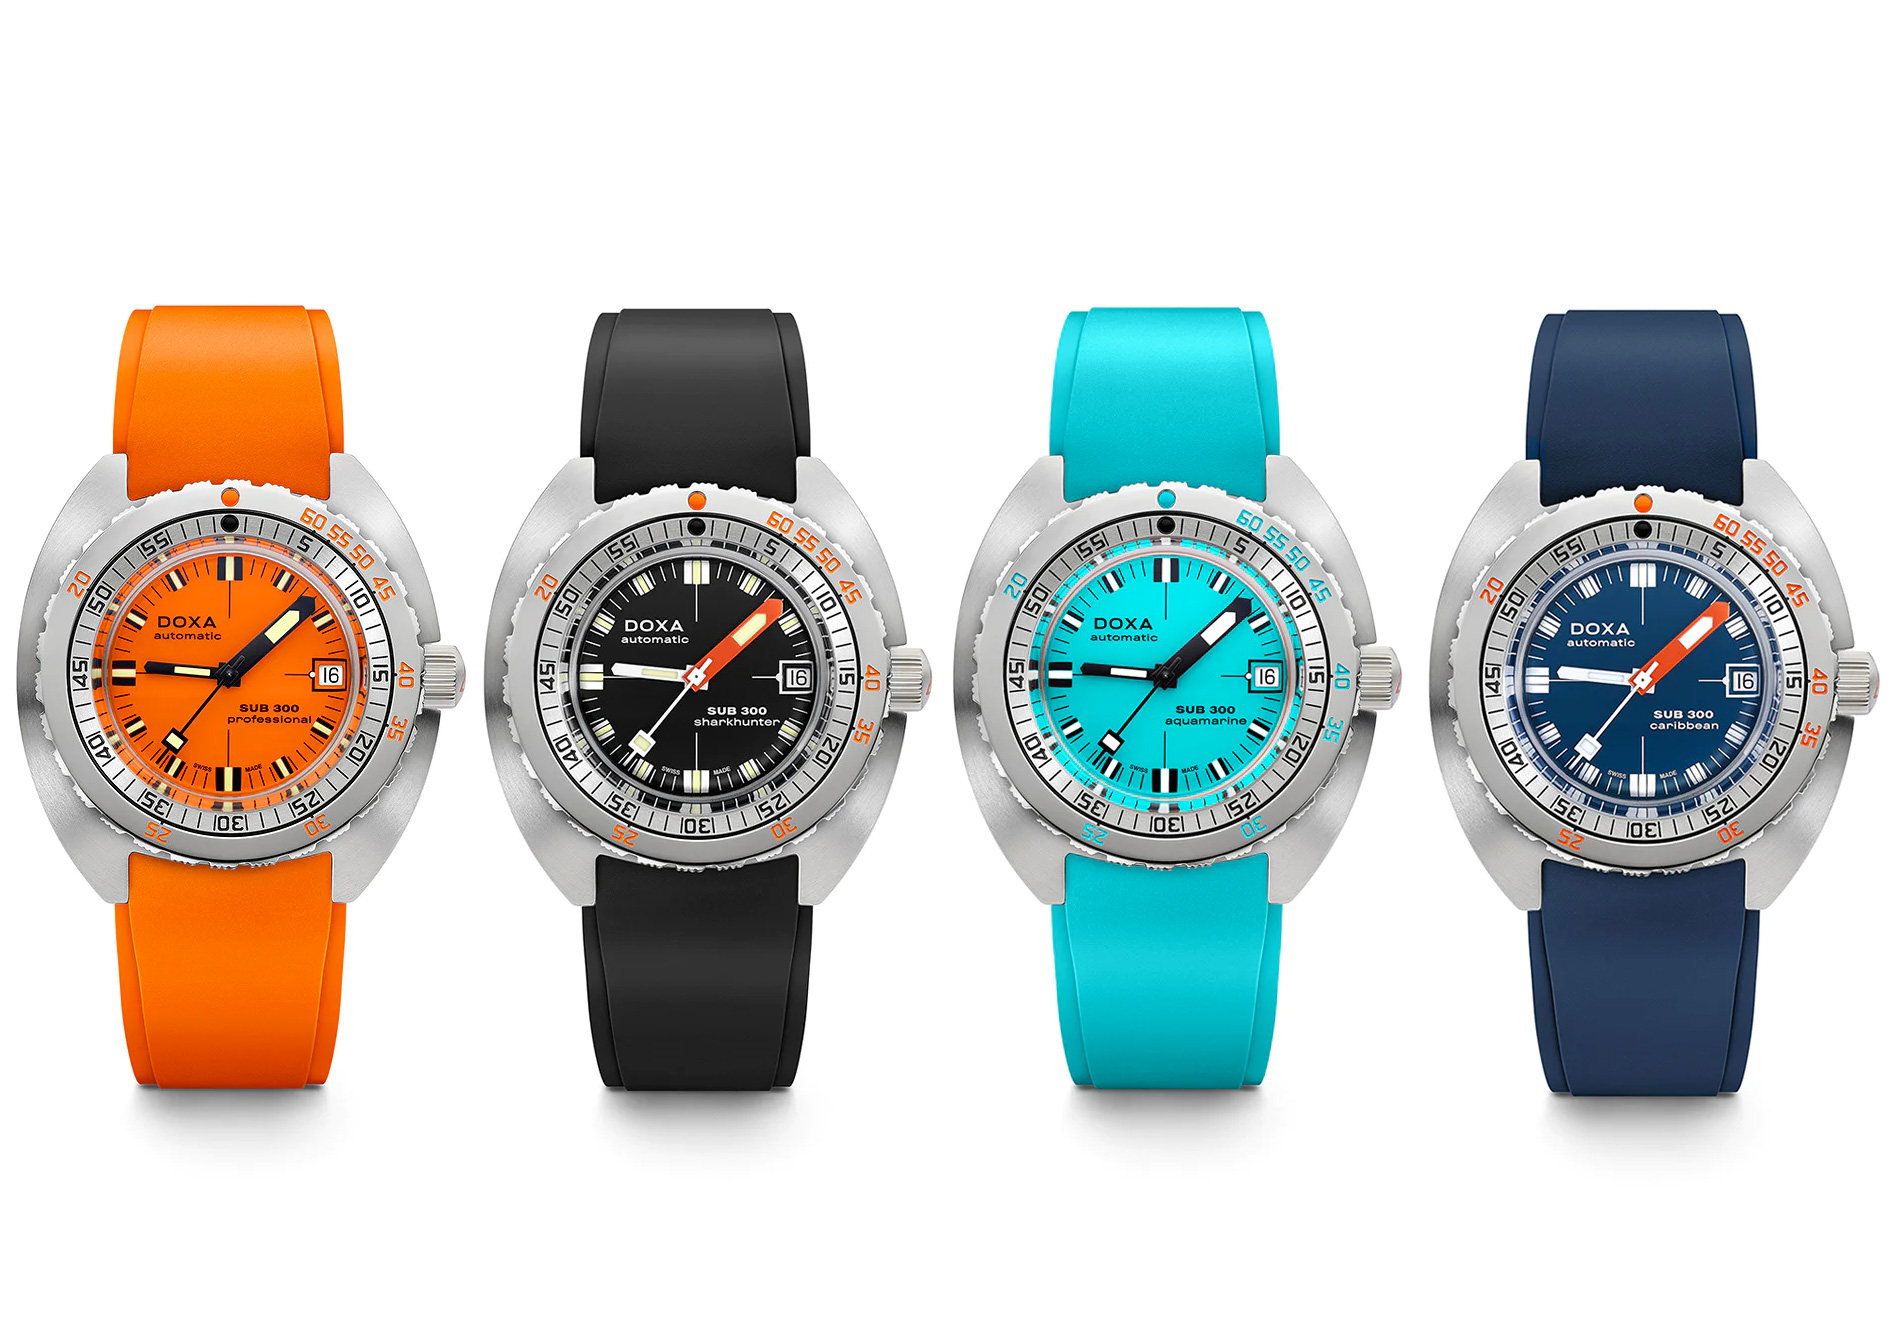 Classic Doxa Diver Gets Splashed with Color at werd.com